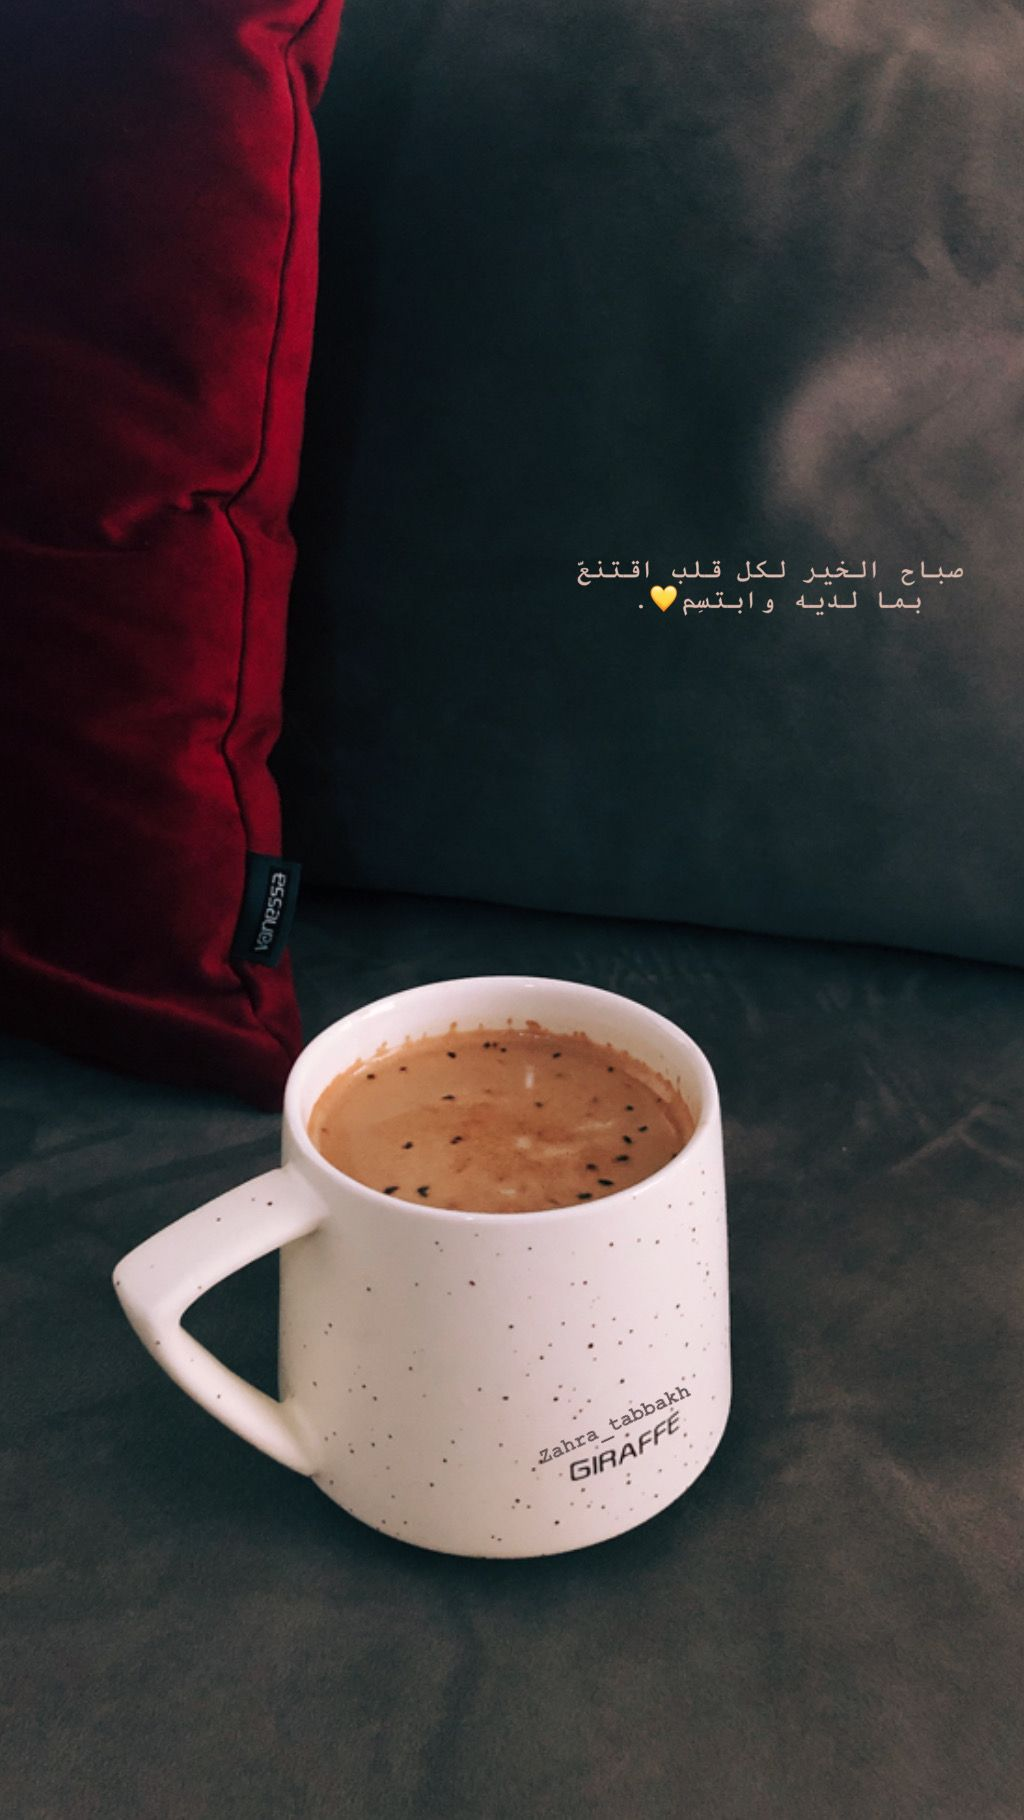 Idea by هدى الهاجري on Art Coffee latte art, Arabic quotes